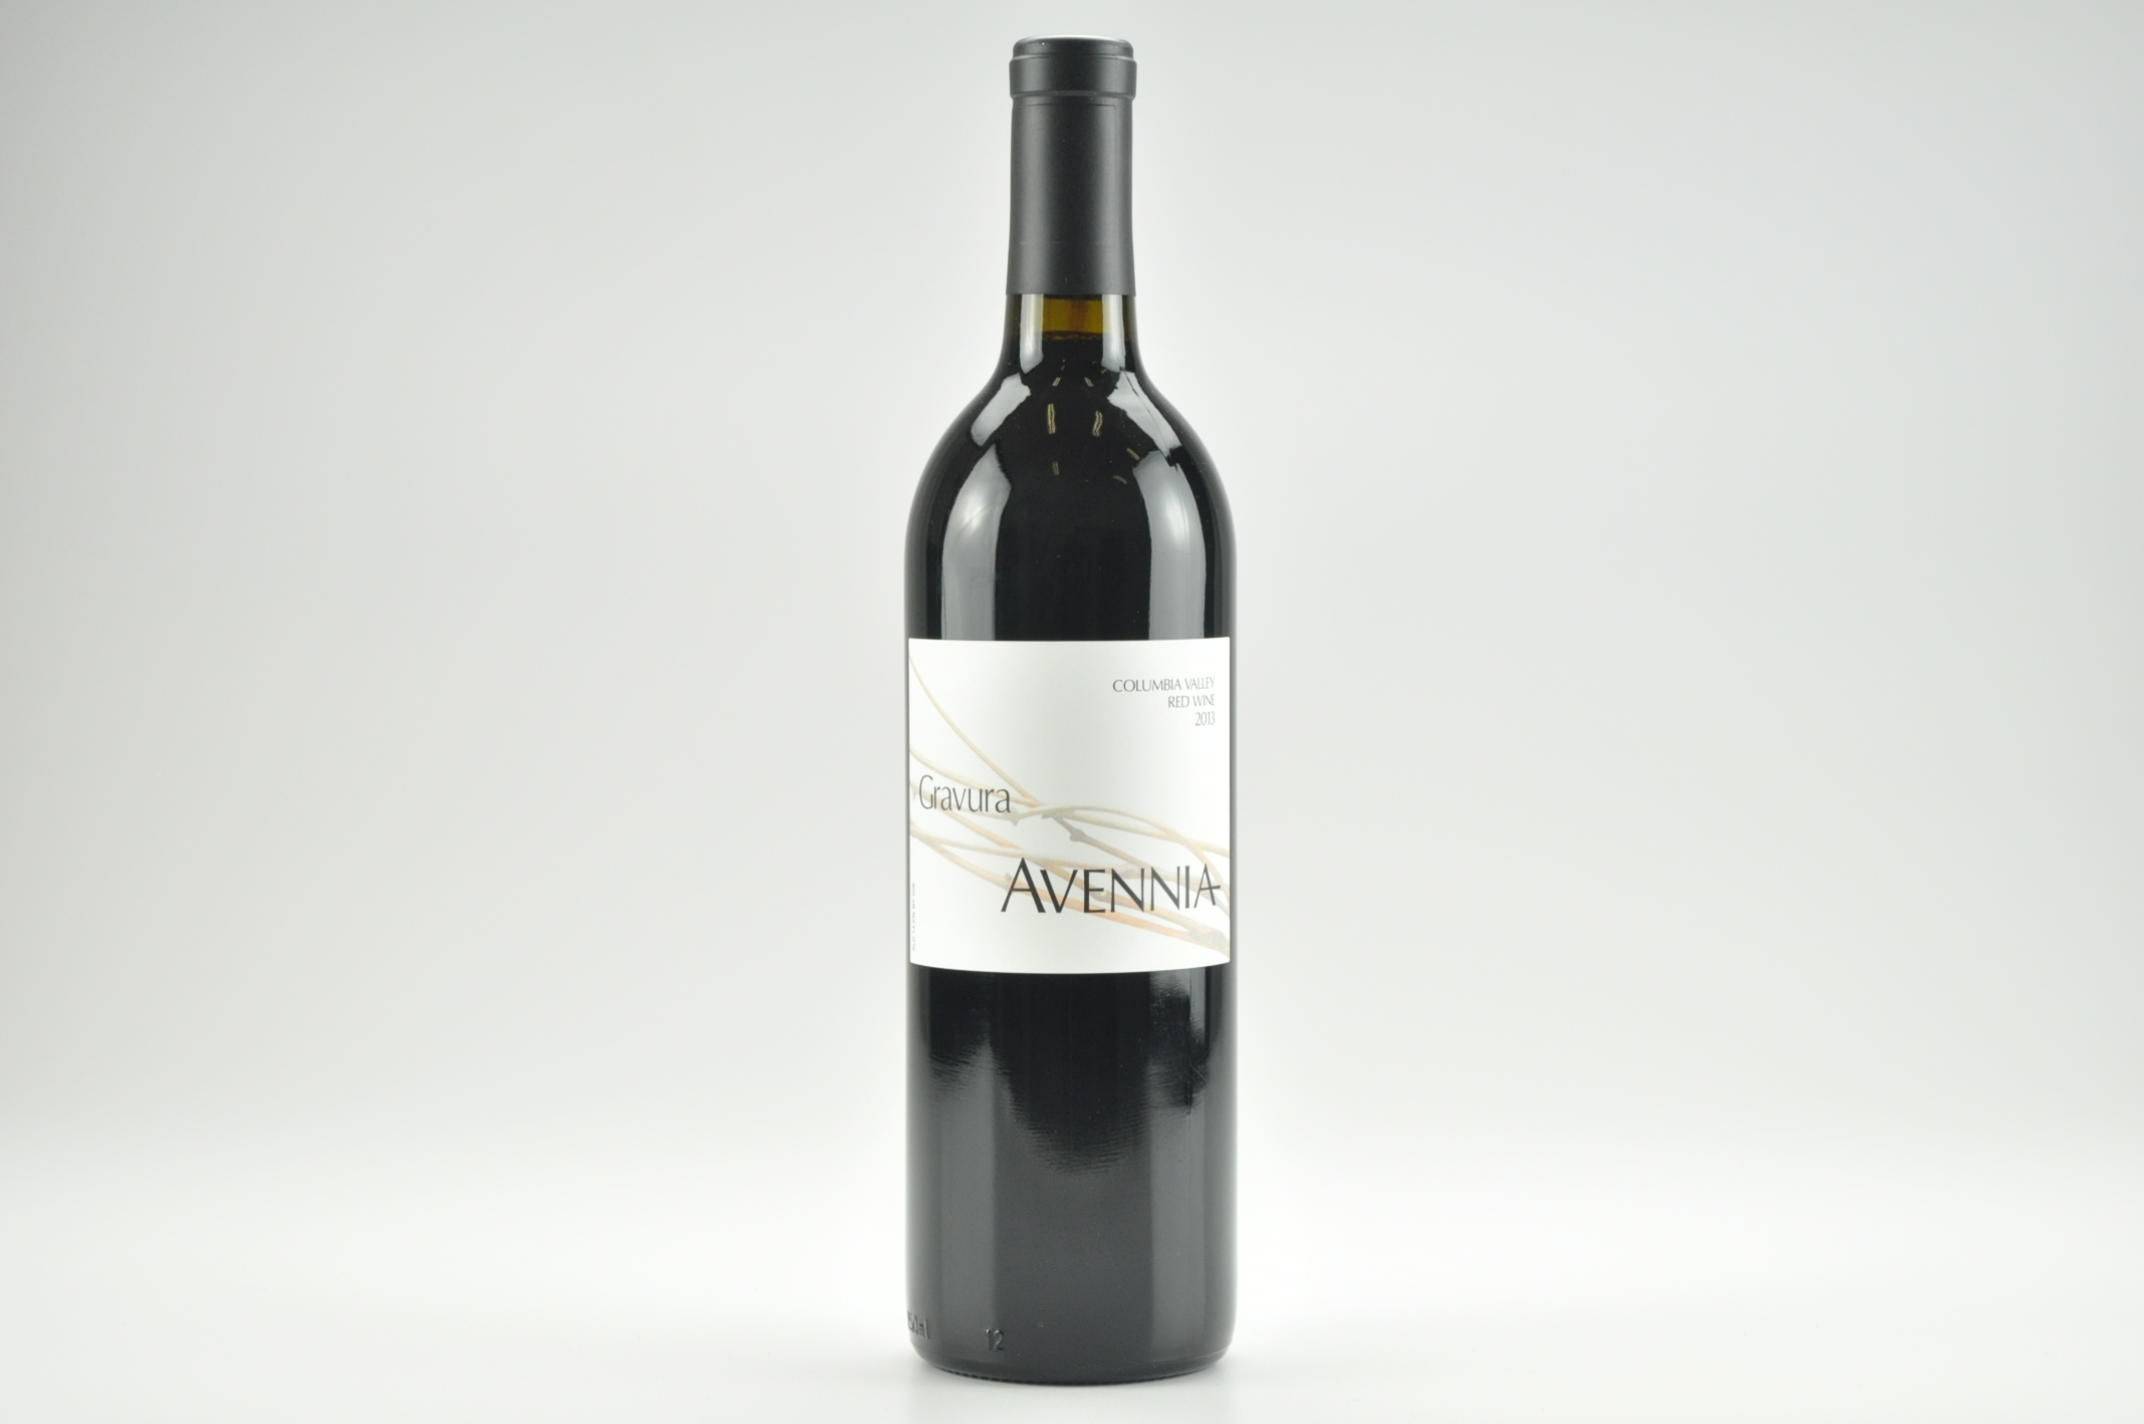 2013 Avennia Gravura Red Wine, Columbia Valley RP--92